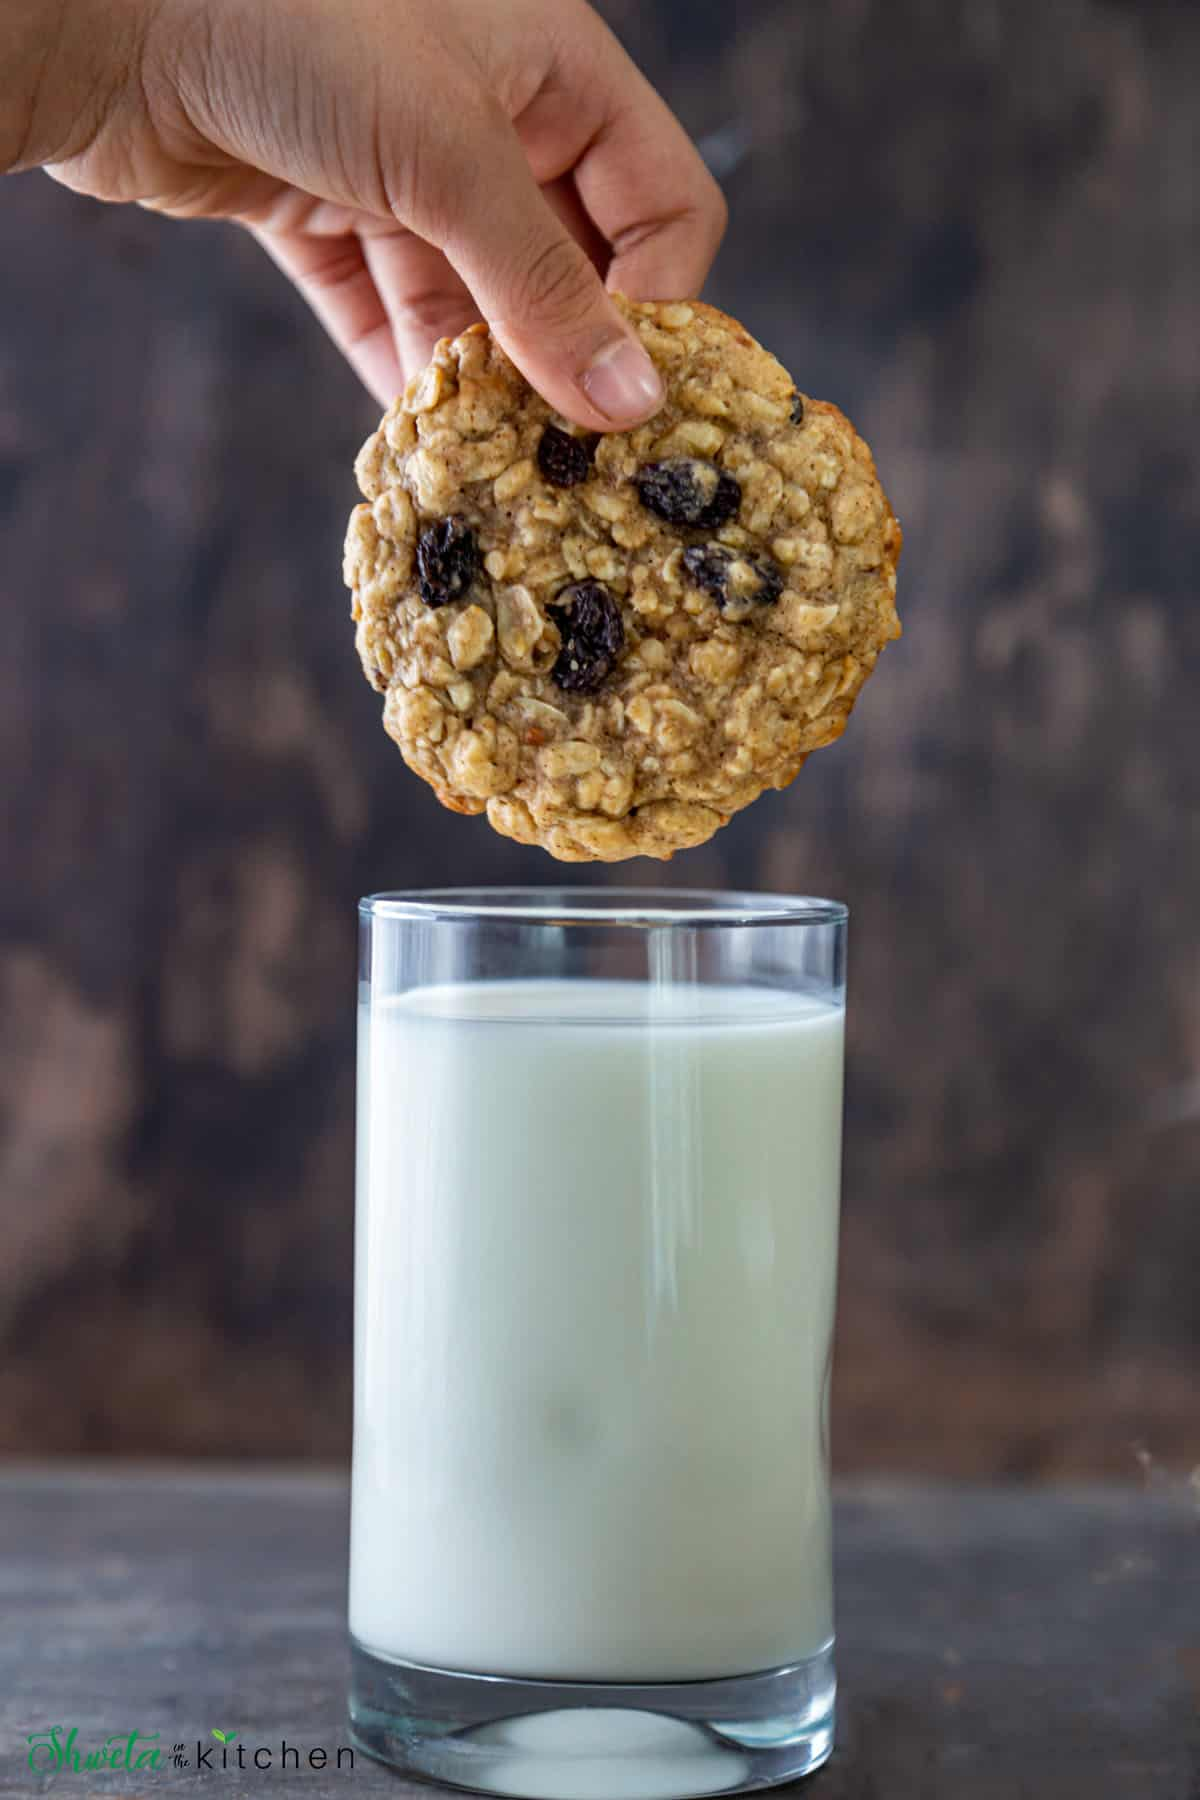 Oatmeal raisin cookie about to be dipped in glass of milk